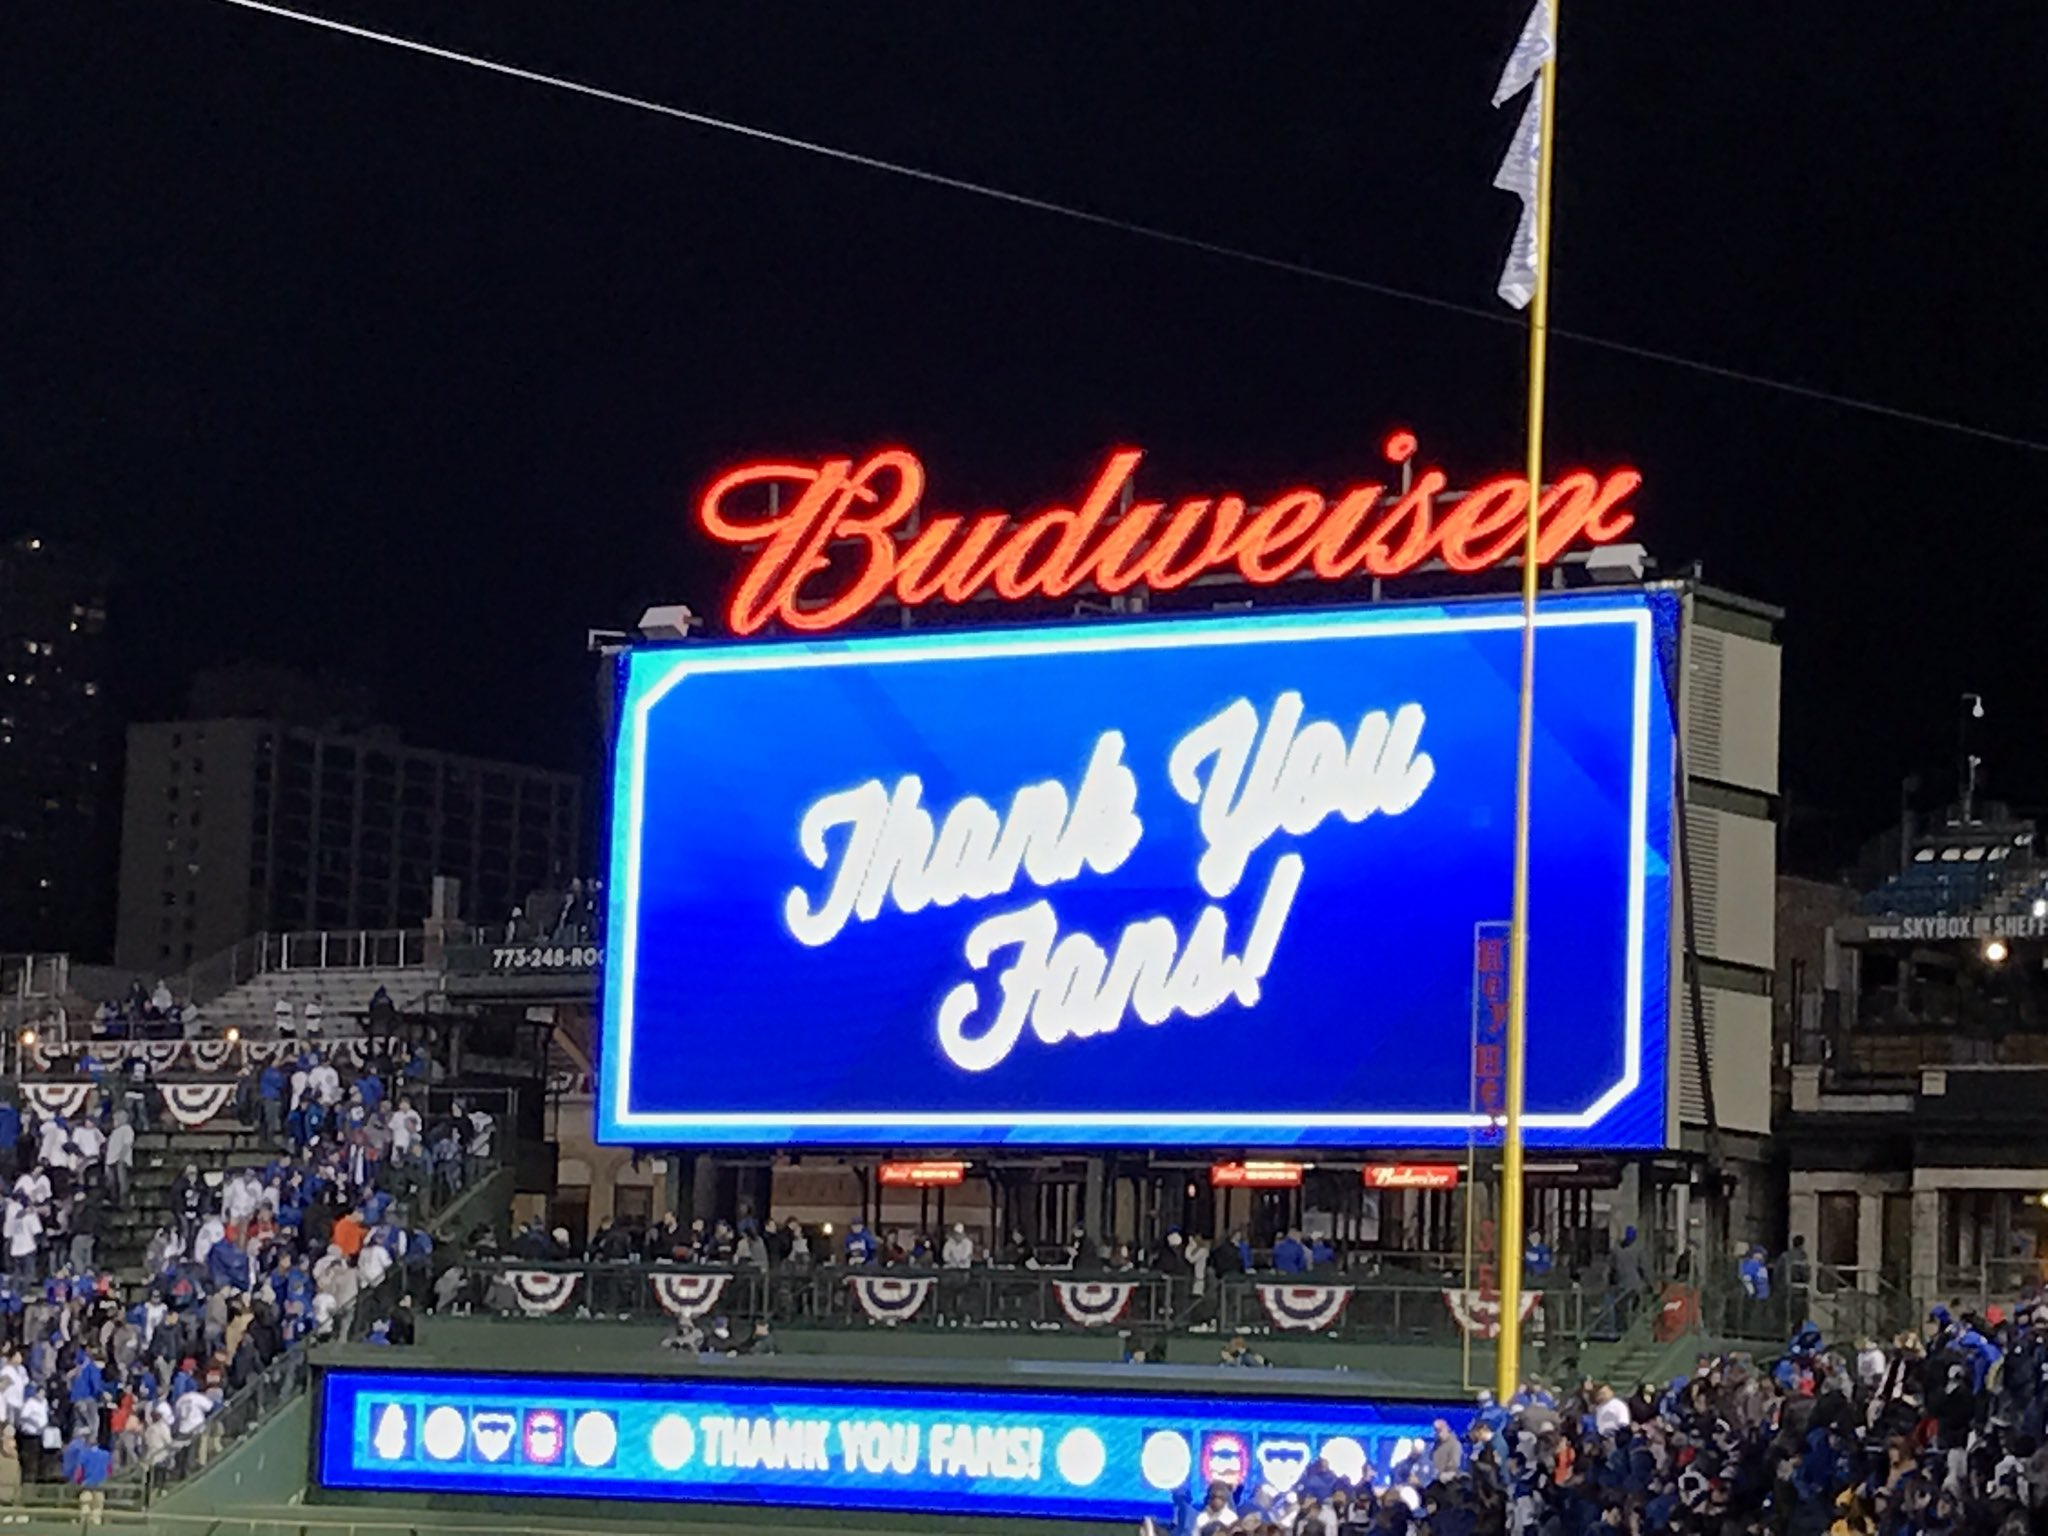 Didn't end the way we wanted it to, but that was  a night to remember #Cubs fans! Thanks for all the kind words. More to come tomorrow https://t.co/49X96J41gJ